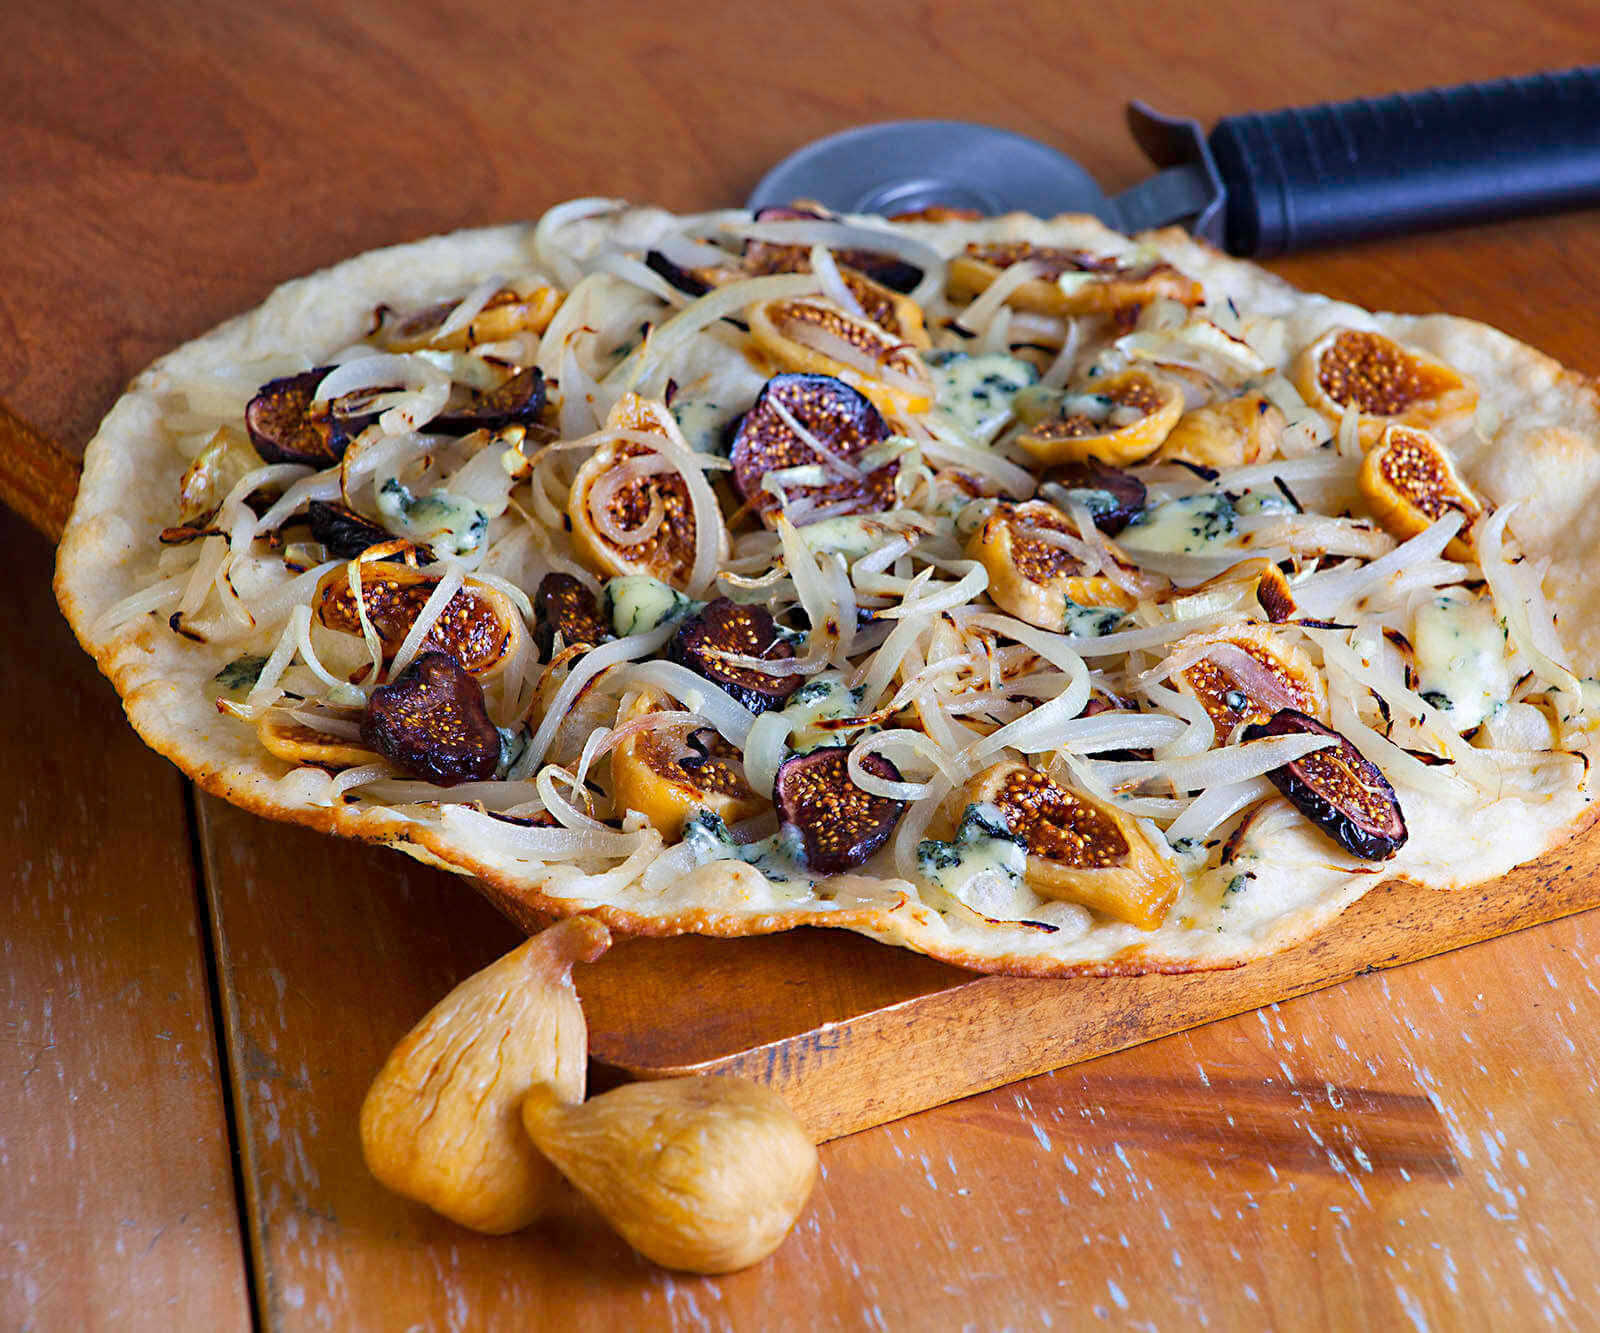 Gorgonzola Pizza with Dried Fig and Caramelized Onion